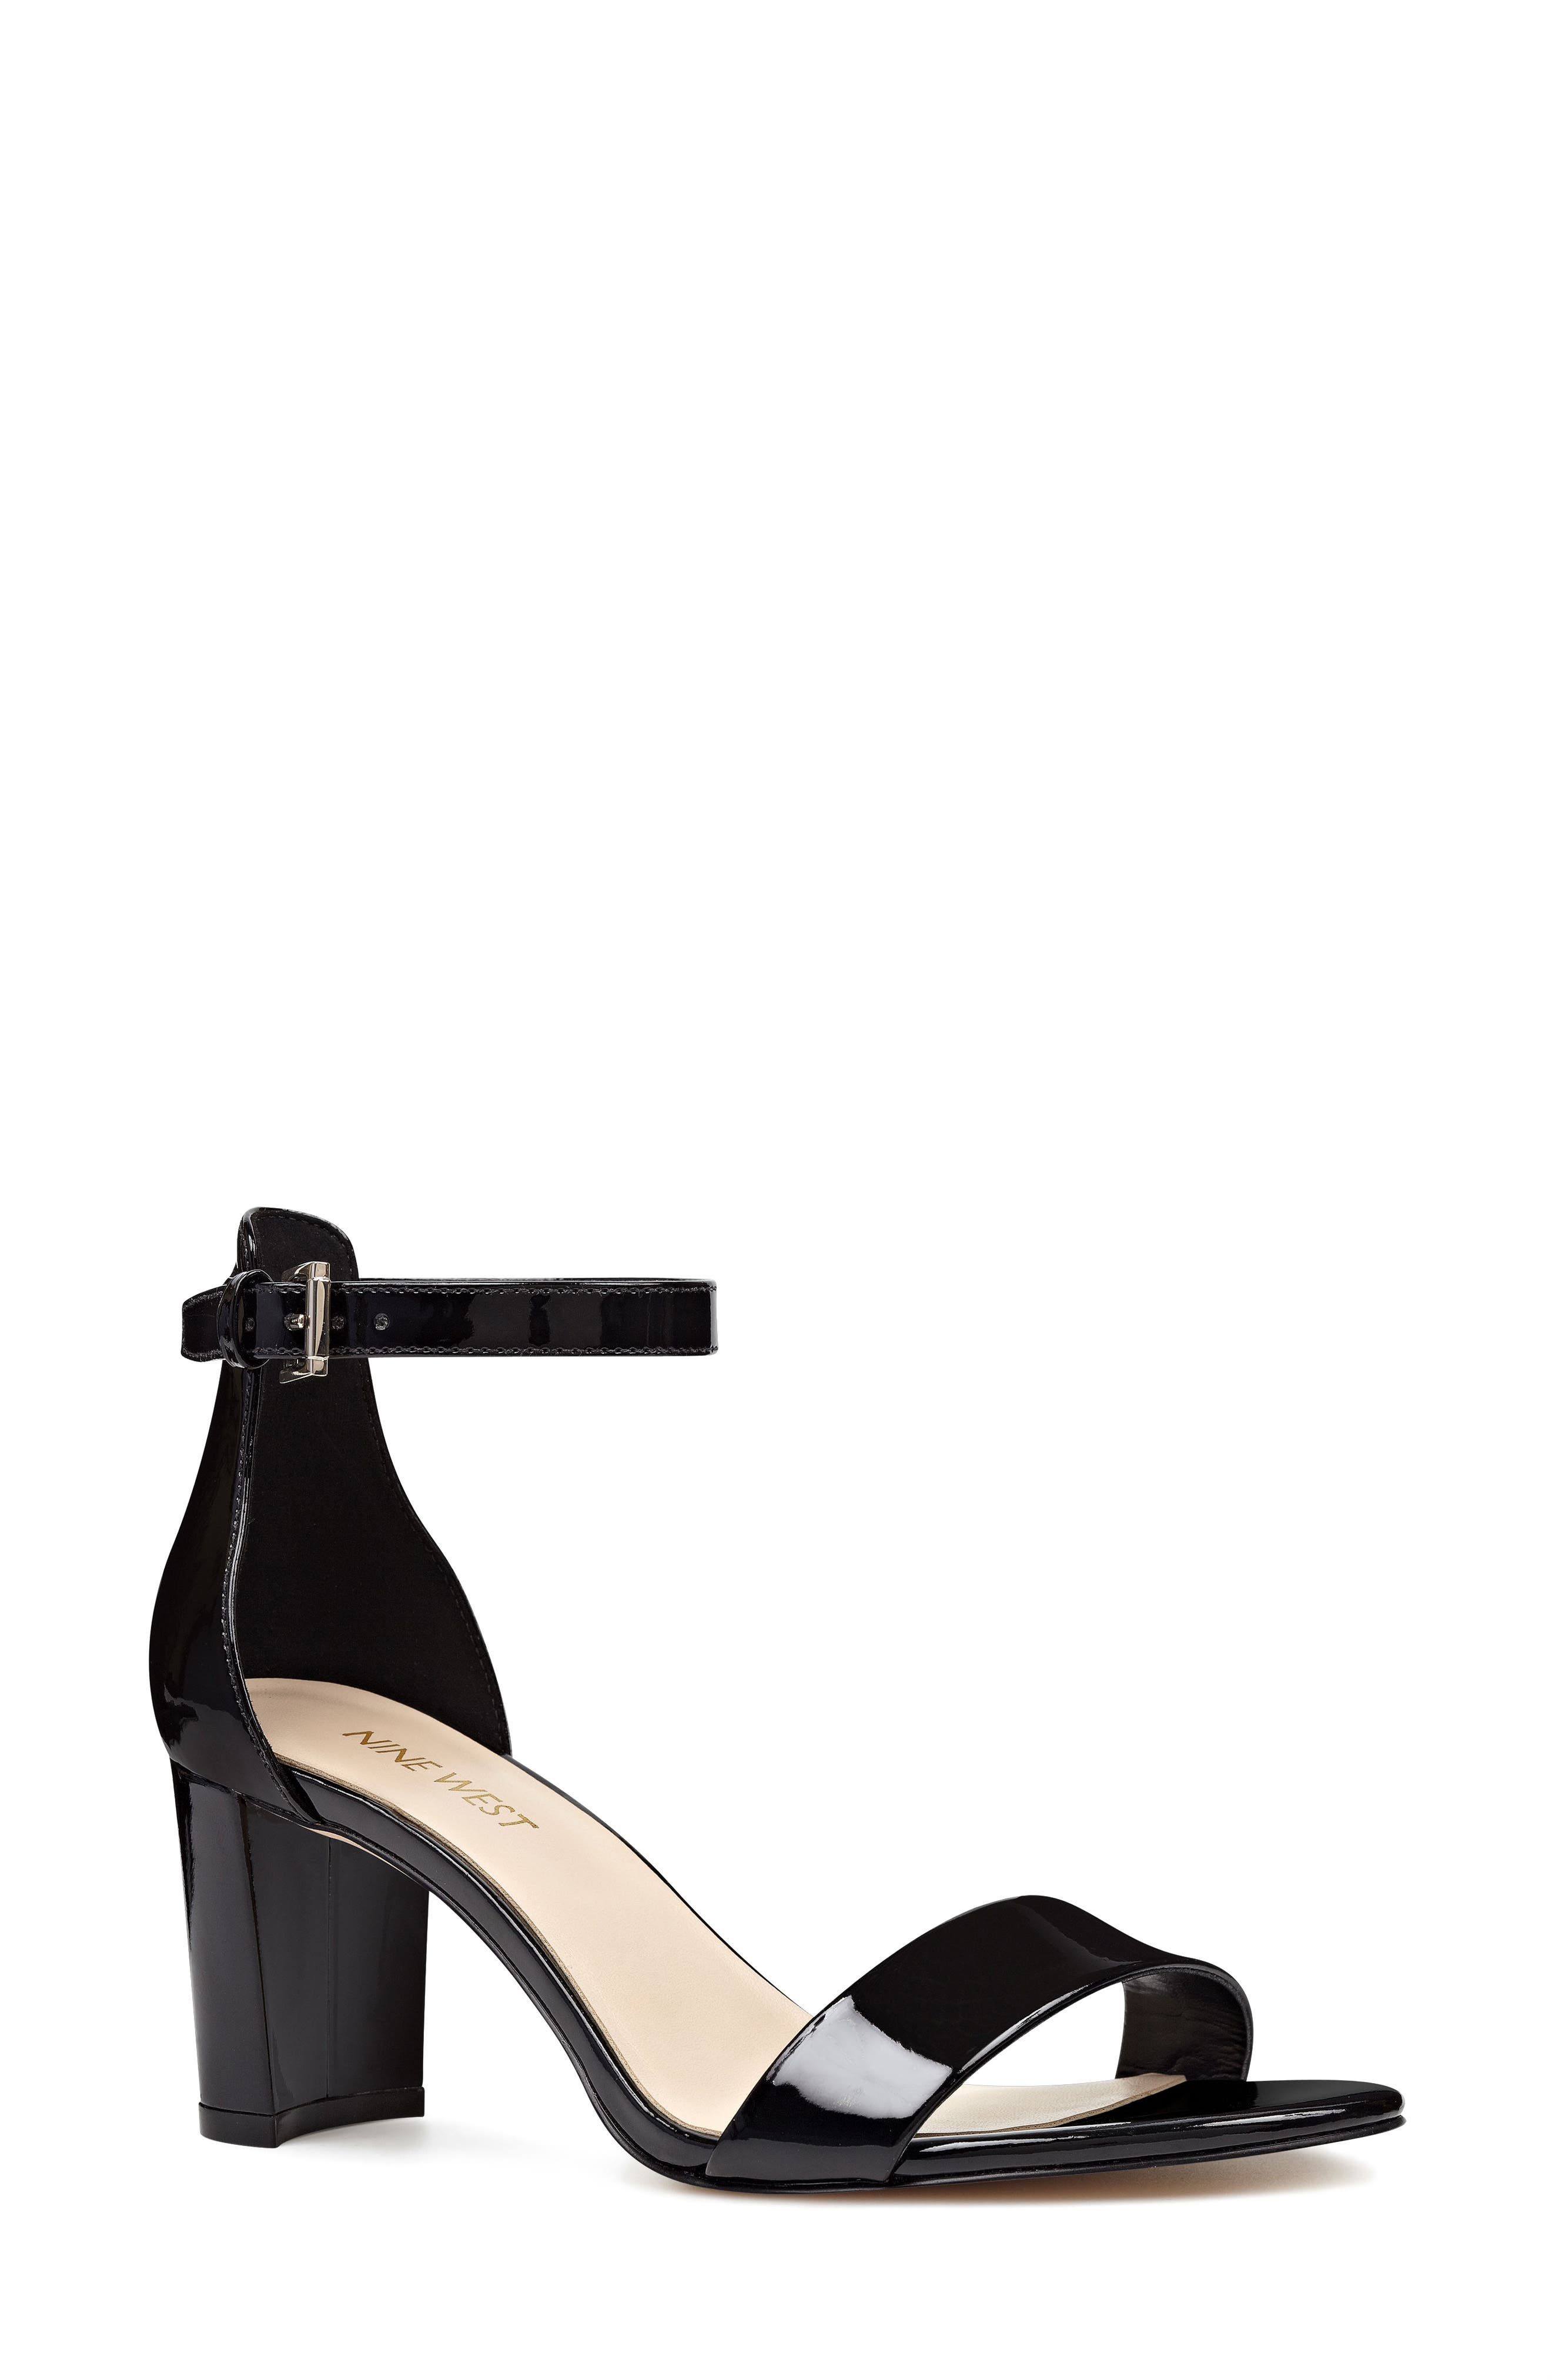 Pruce Ankle Strap Sandal,                         Main,                         color, BLACK PATENT